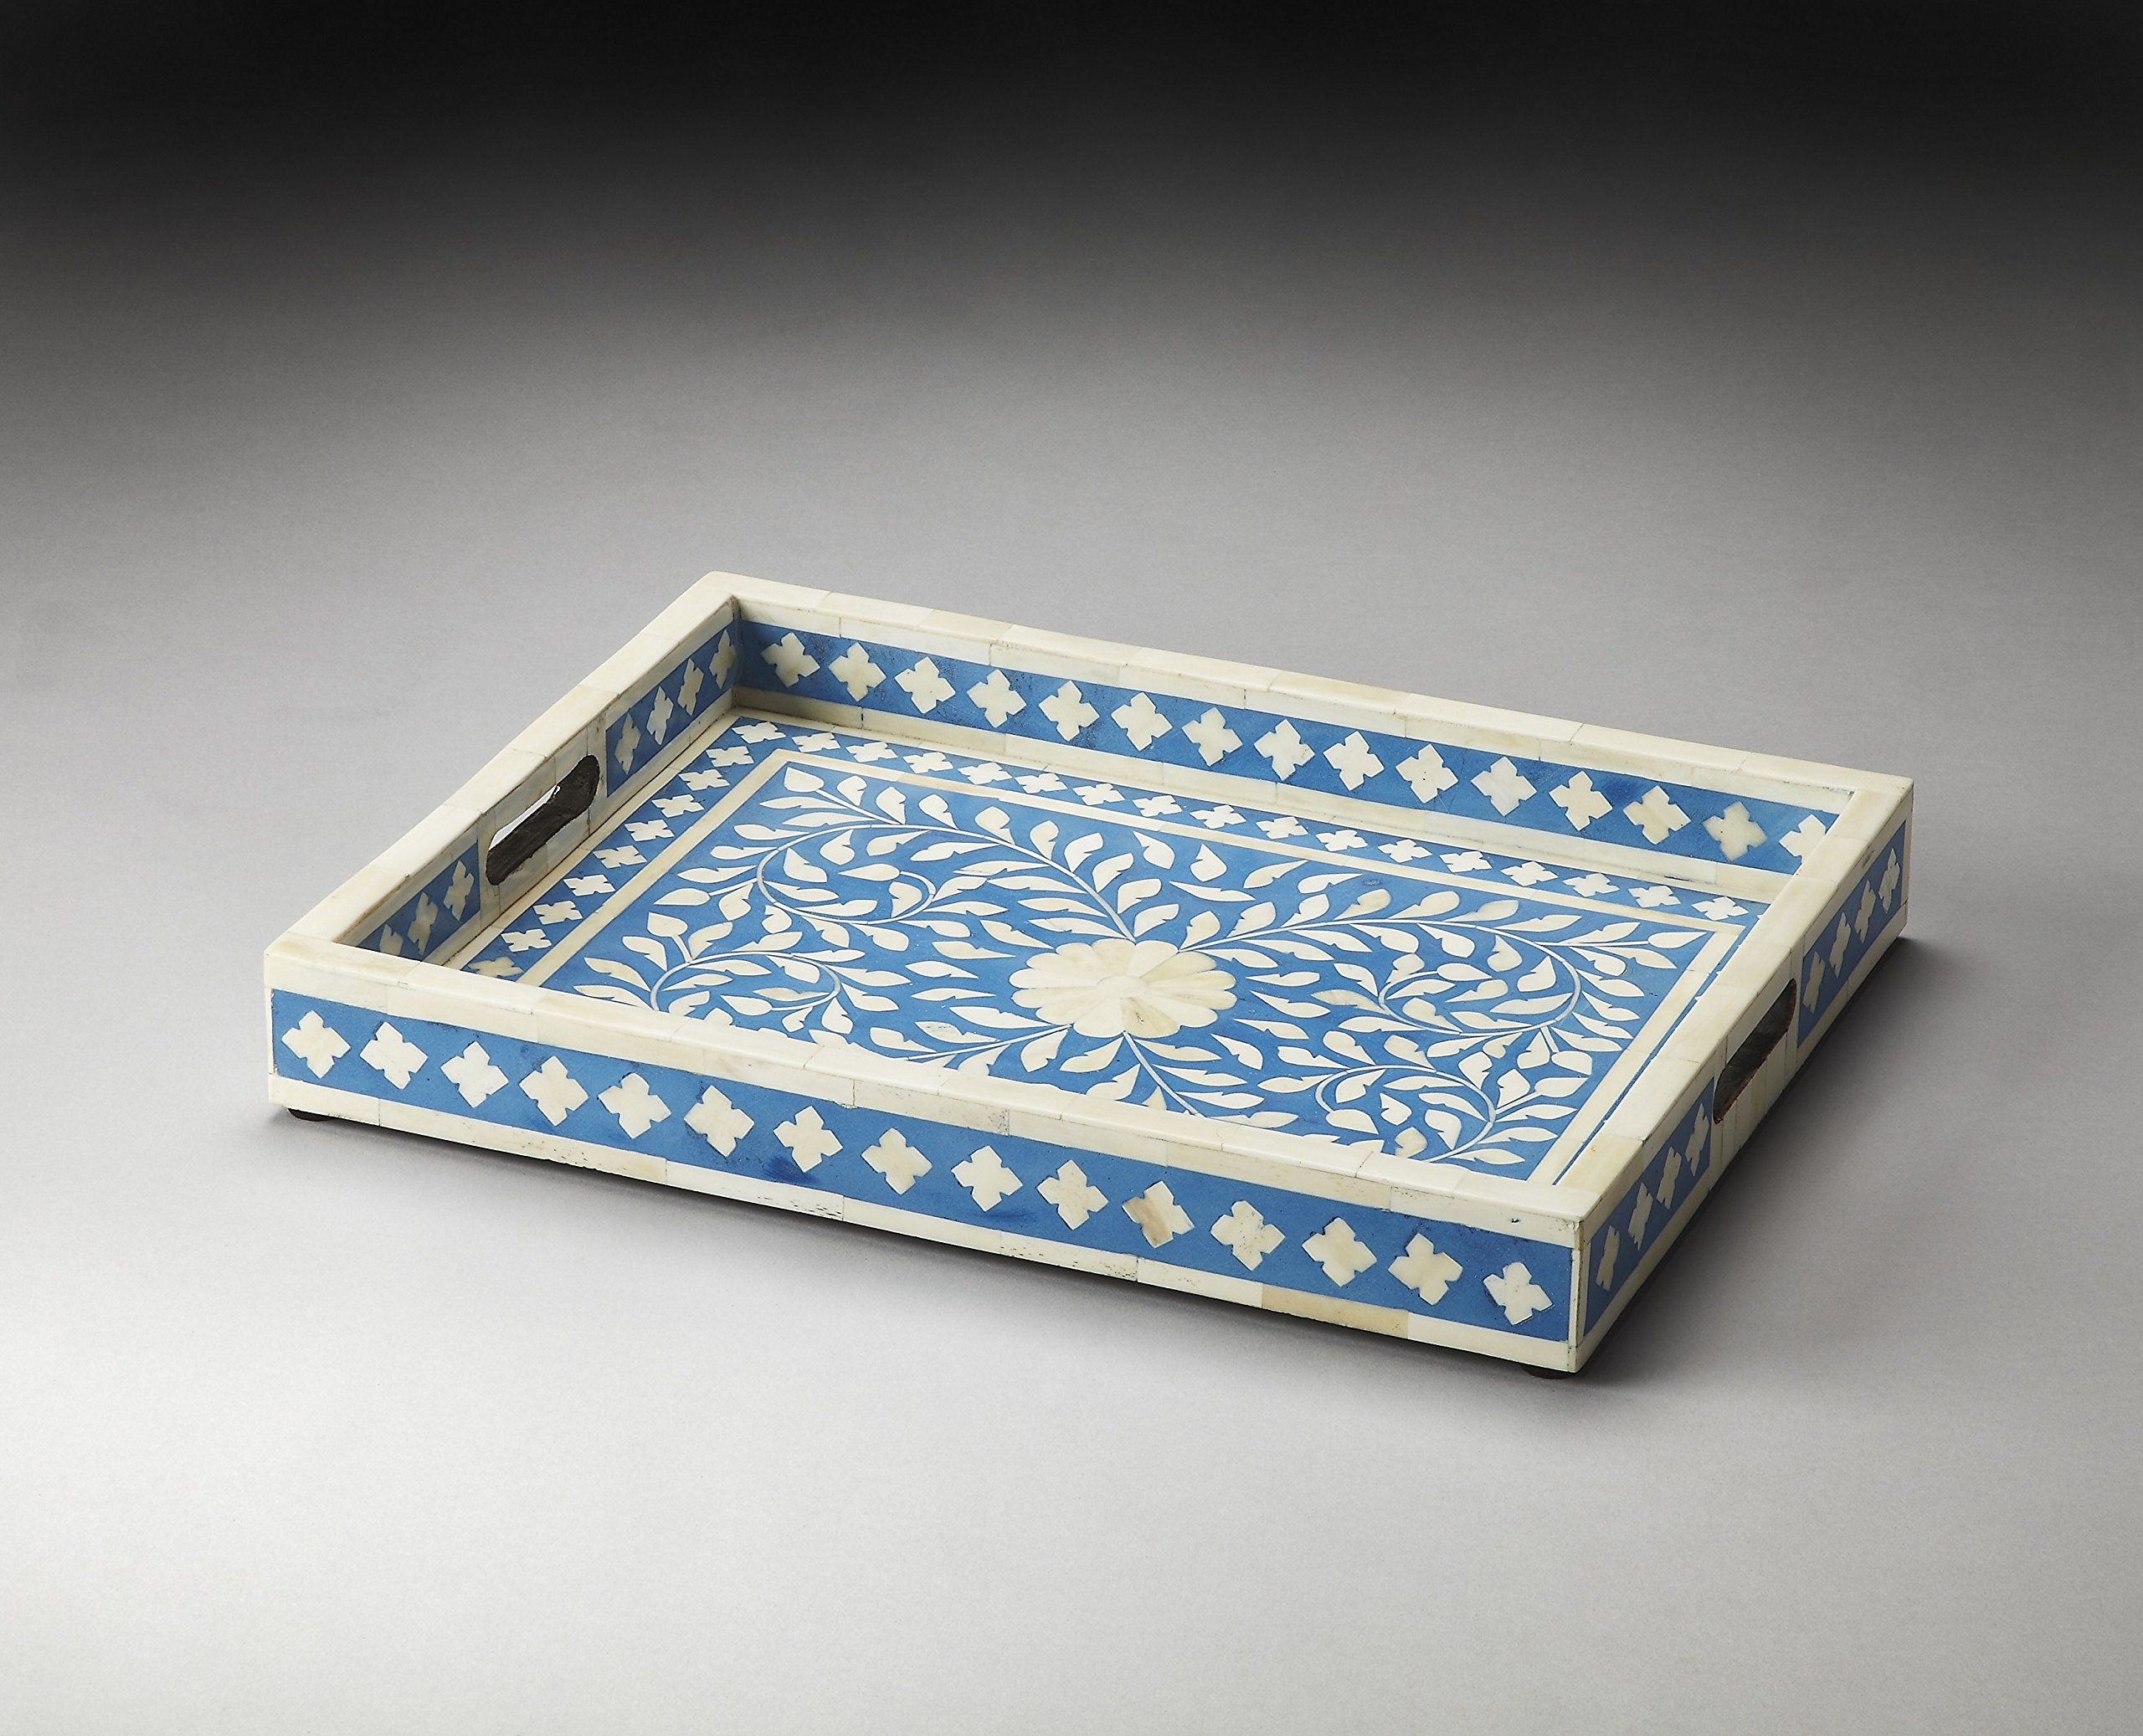 Butler 3231016 Vivienne Serving Tray, 17-3/4'' x 13-3/4'' x 2-1/2'', Hors D'oeuvres/Blue Bone Inlay Finish